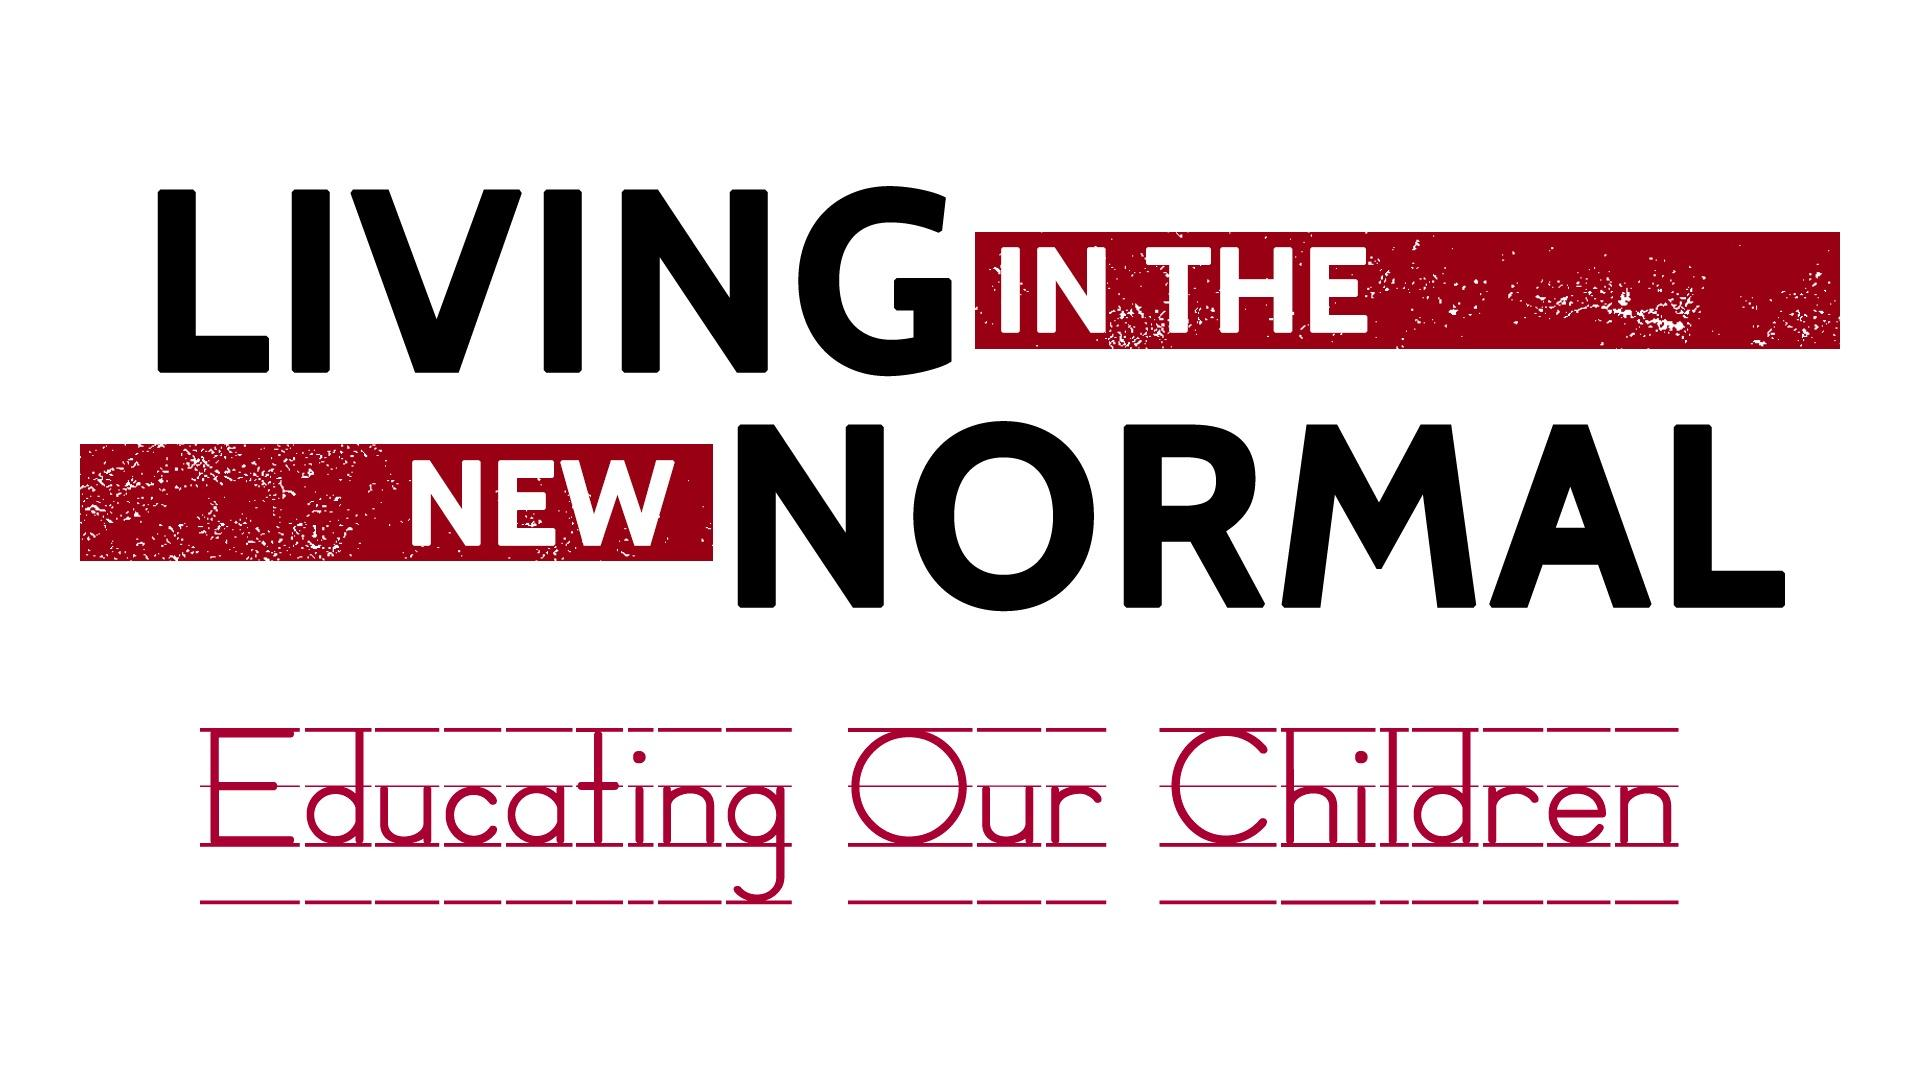 LIVING IN THE NEW NORMAL: EDUCATING OUR CHILDREN